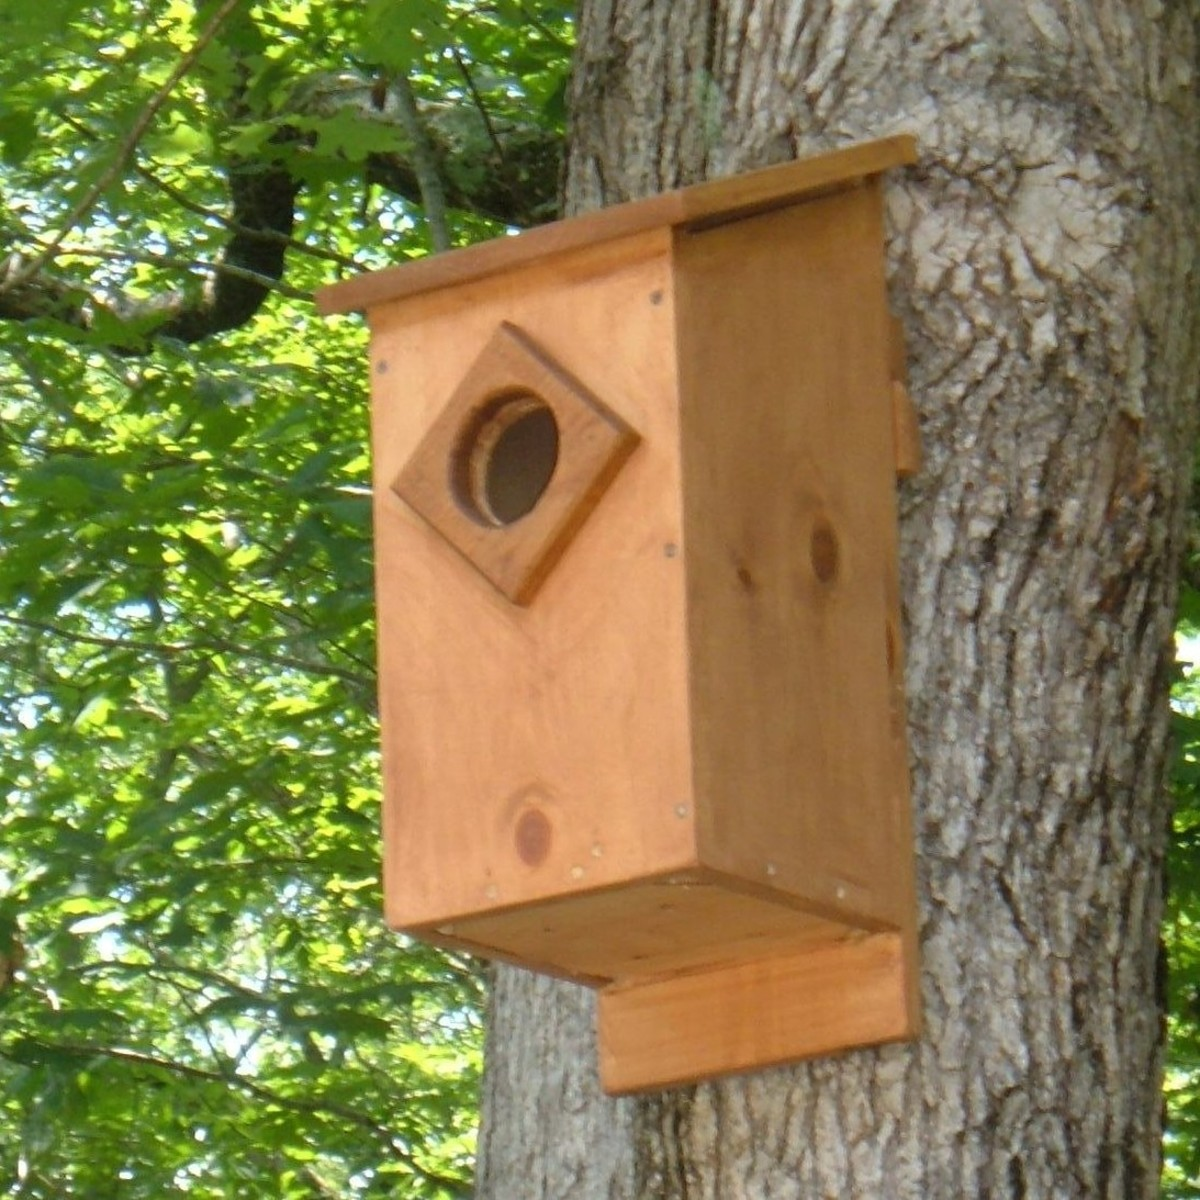 Owl Nest Box Plans